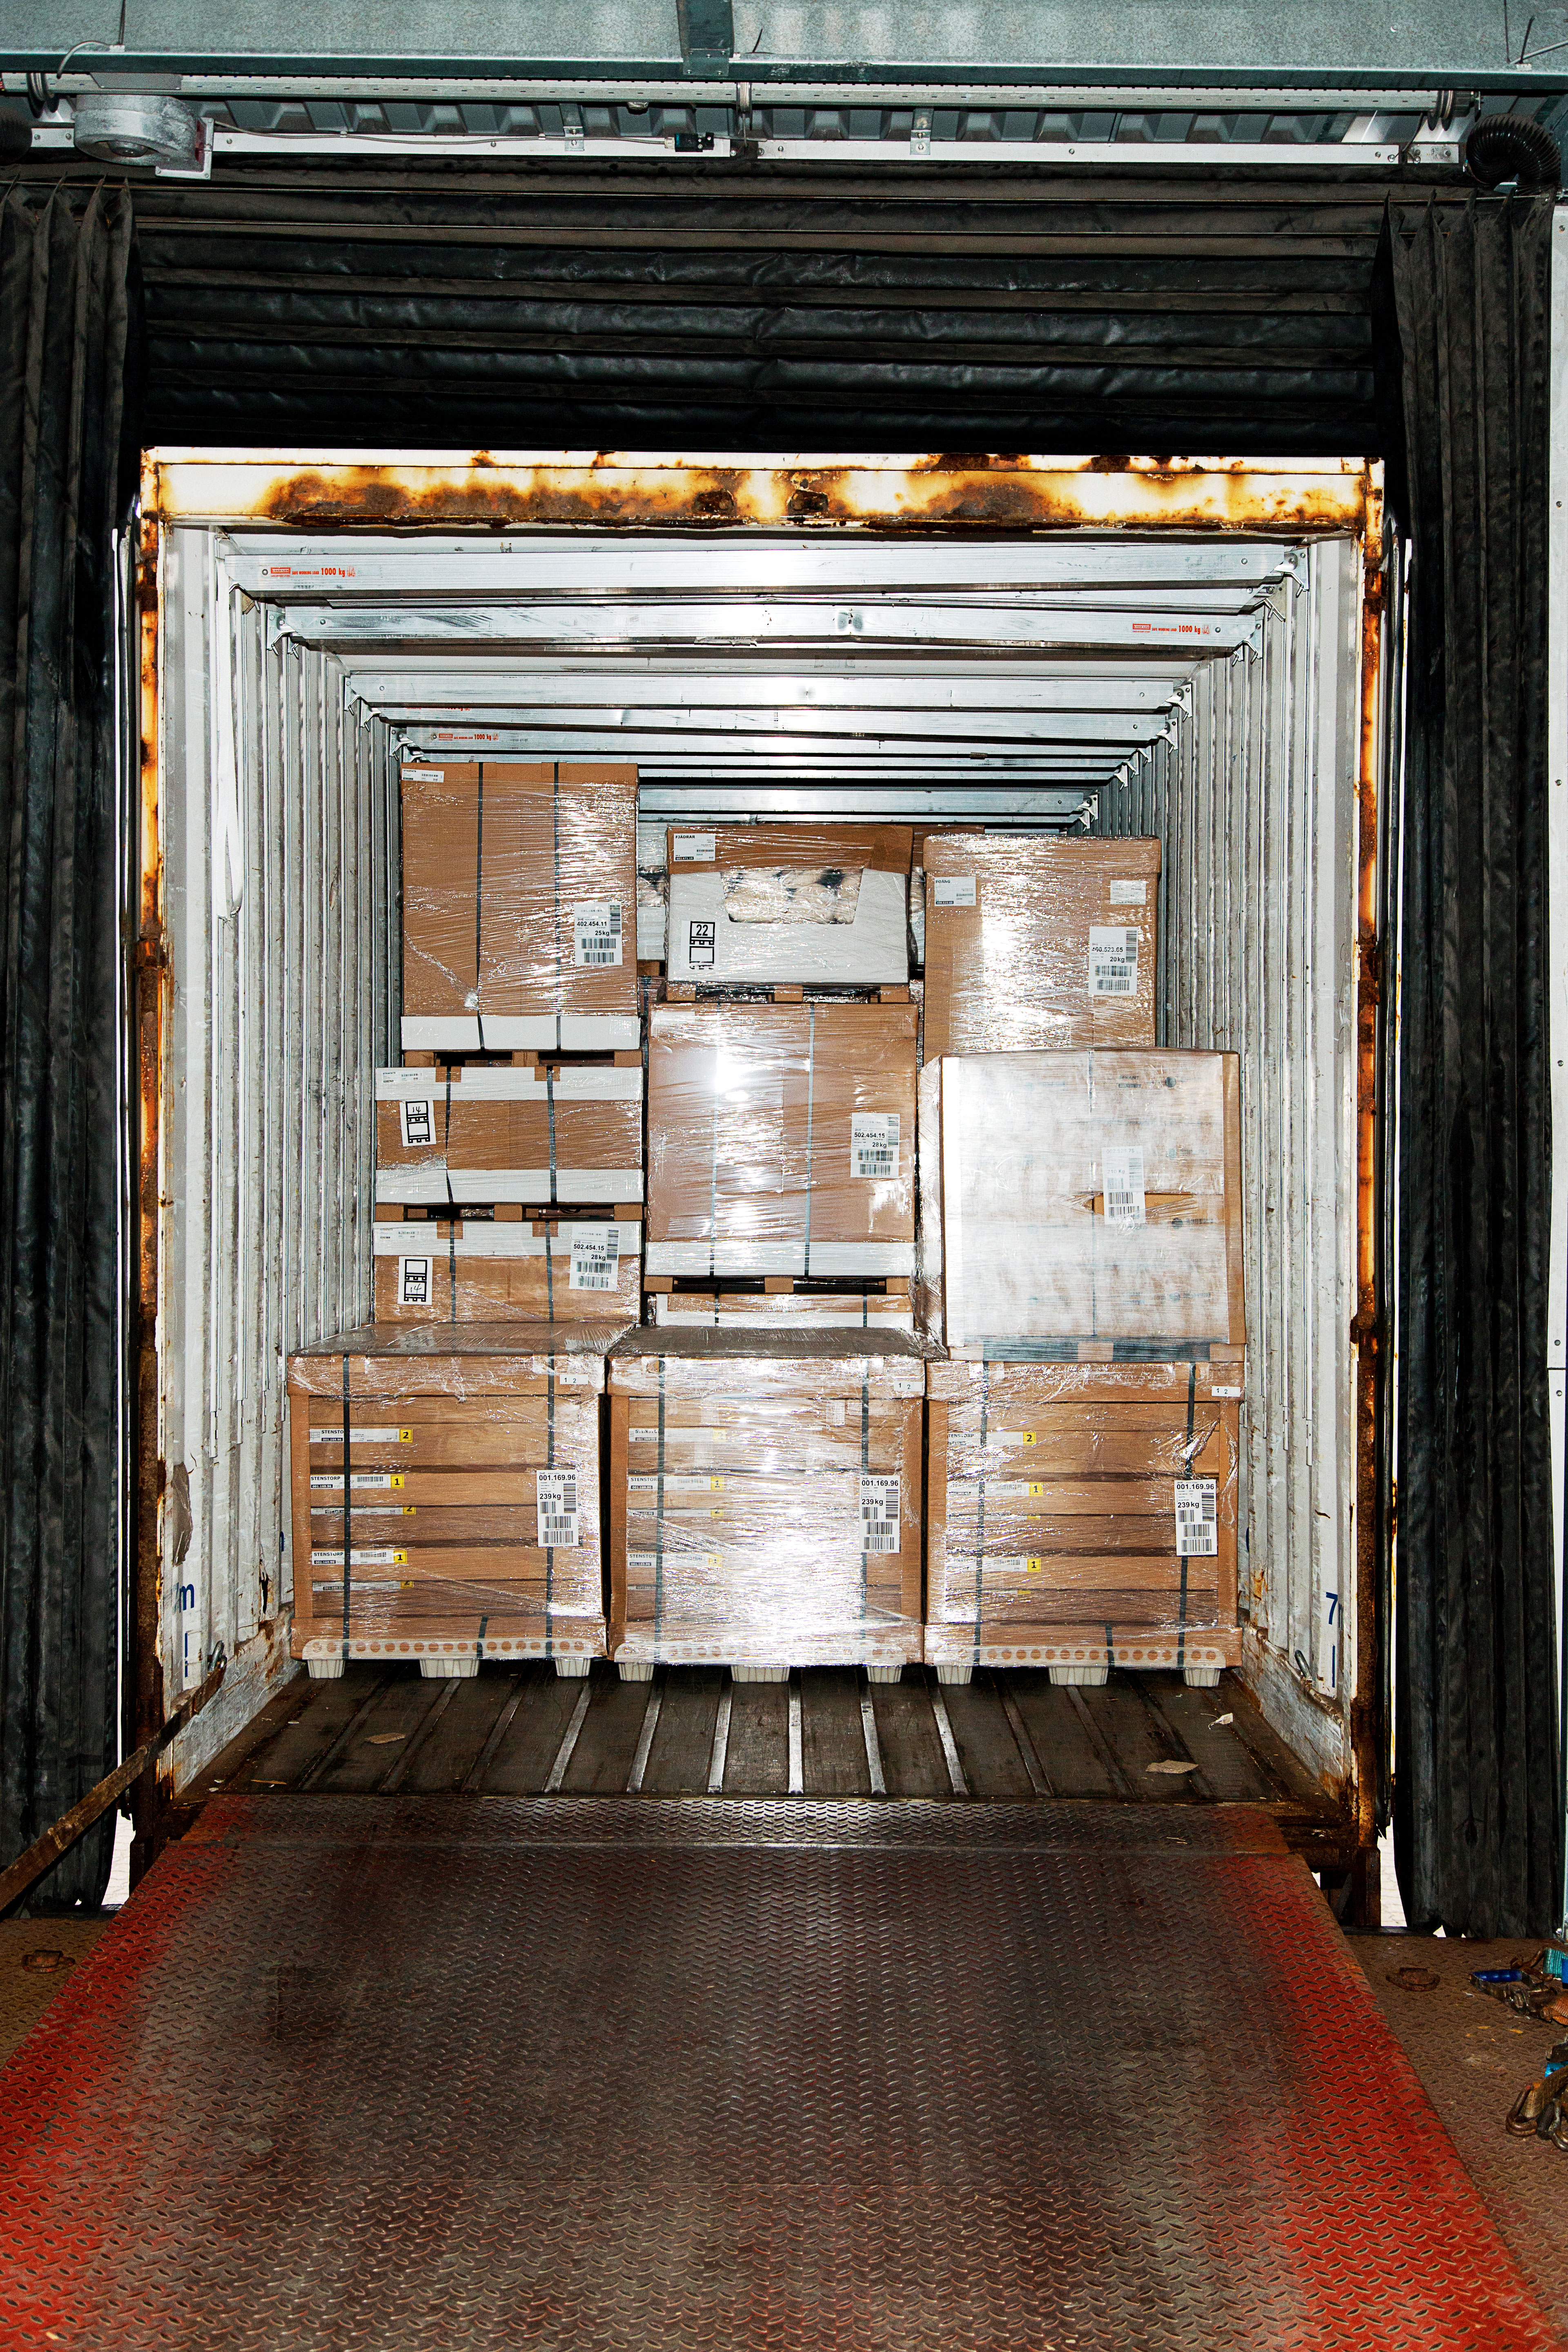 Ikea packs its trucks and shipping containers as tightly as possible to avoid shipping air.